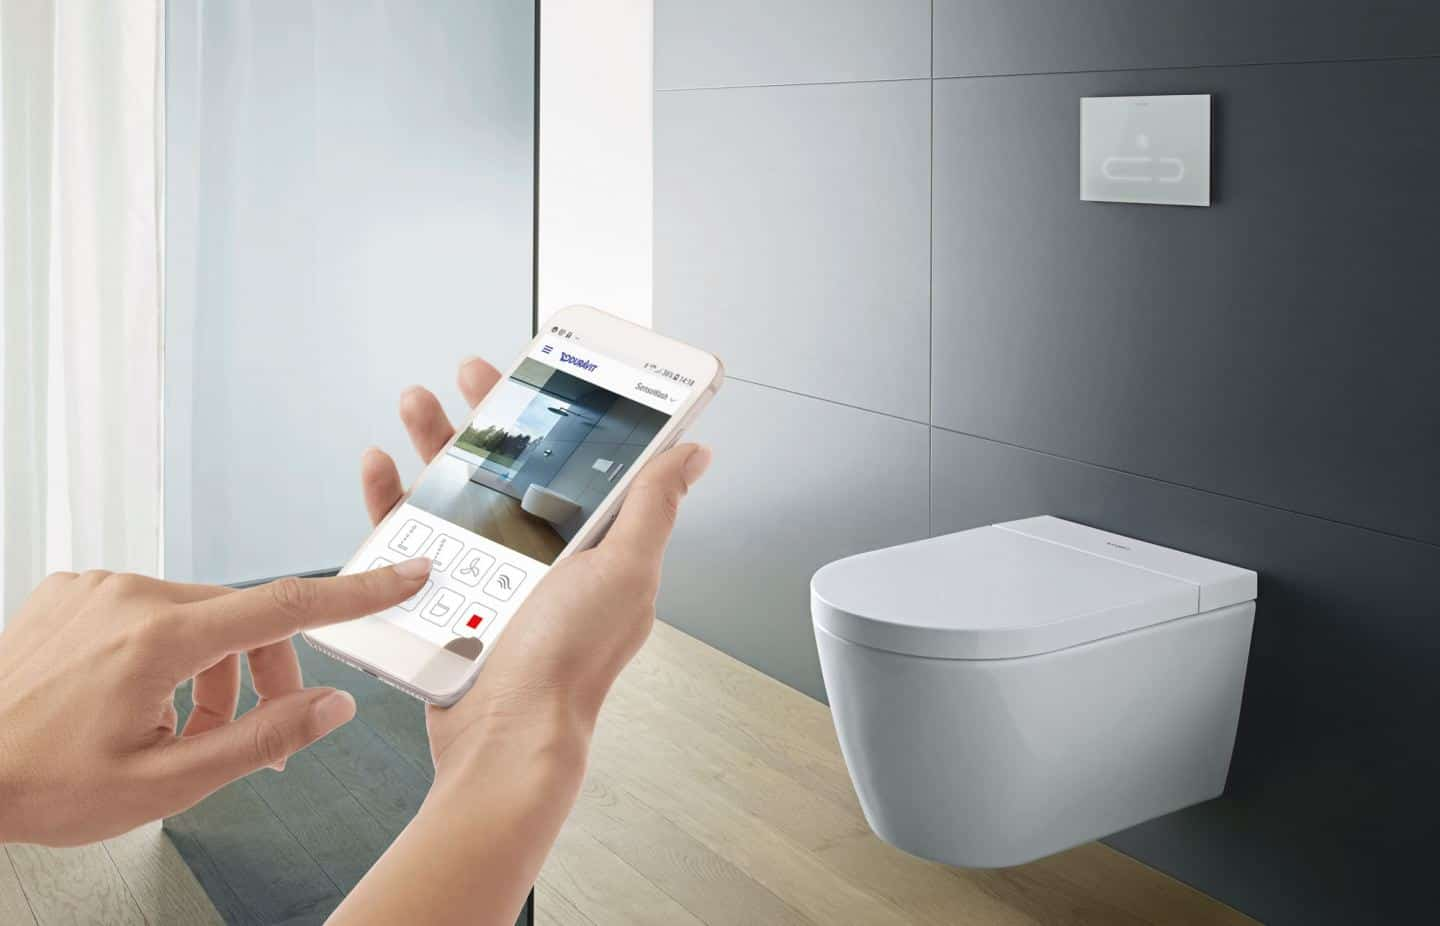 Duravit SensoWash Stark f shower toilet can be operated by remote or via an app for increased hygiene in the bathroom